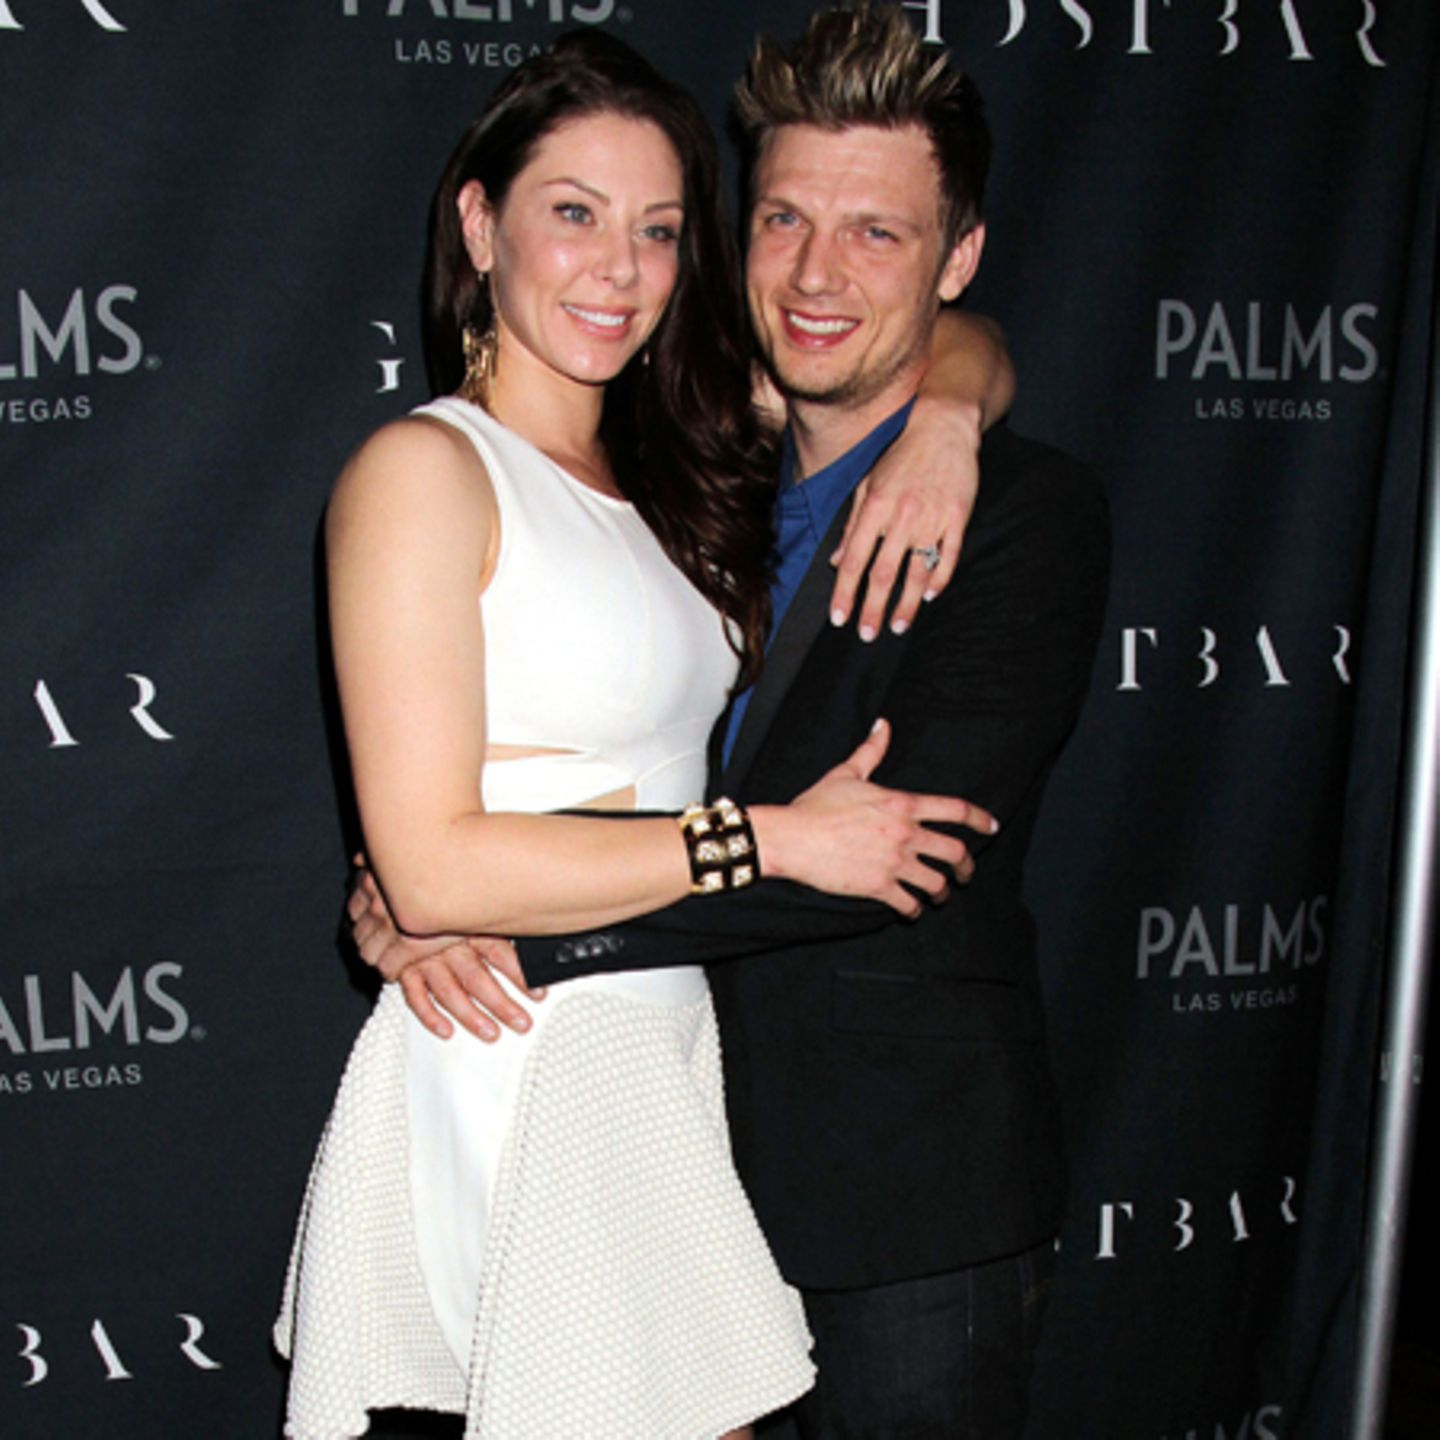 Lauren Kitt + Nick Carter